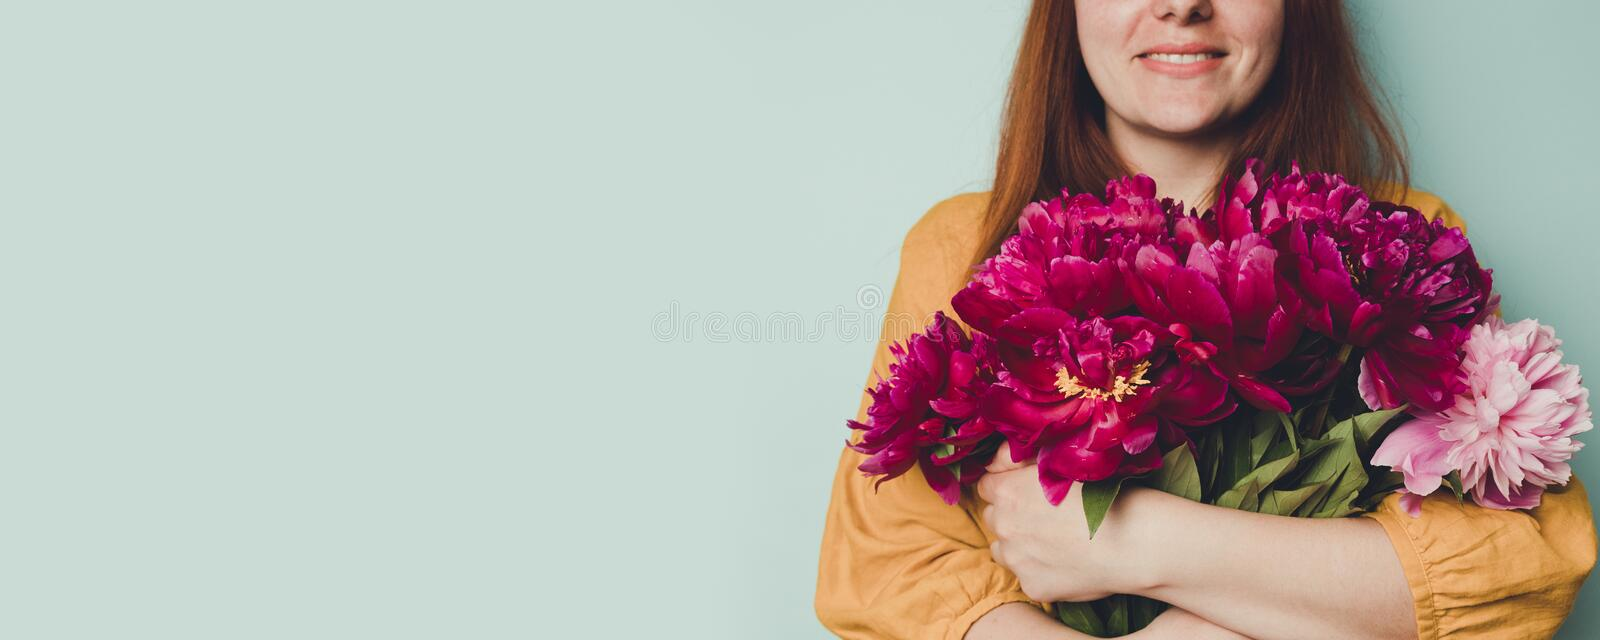 Female hand holding beautiful bouquet with fragrant peonies on light blue background stock image